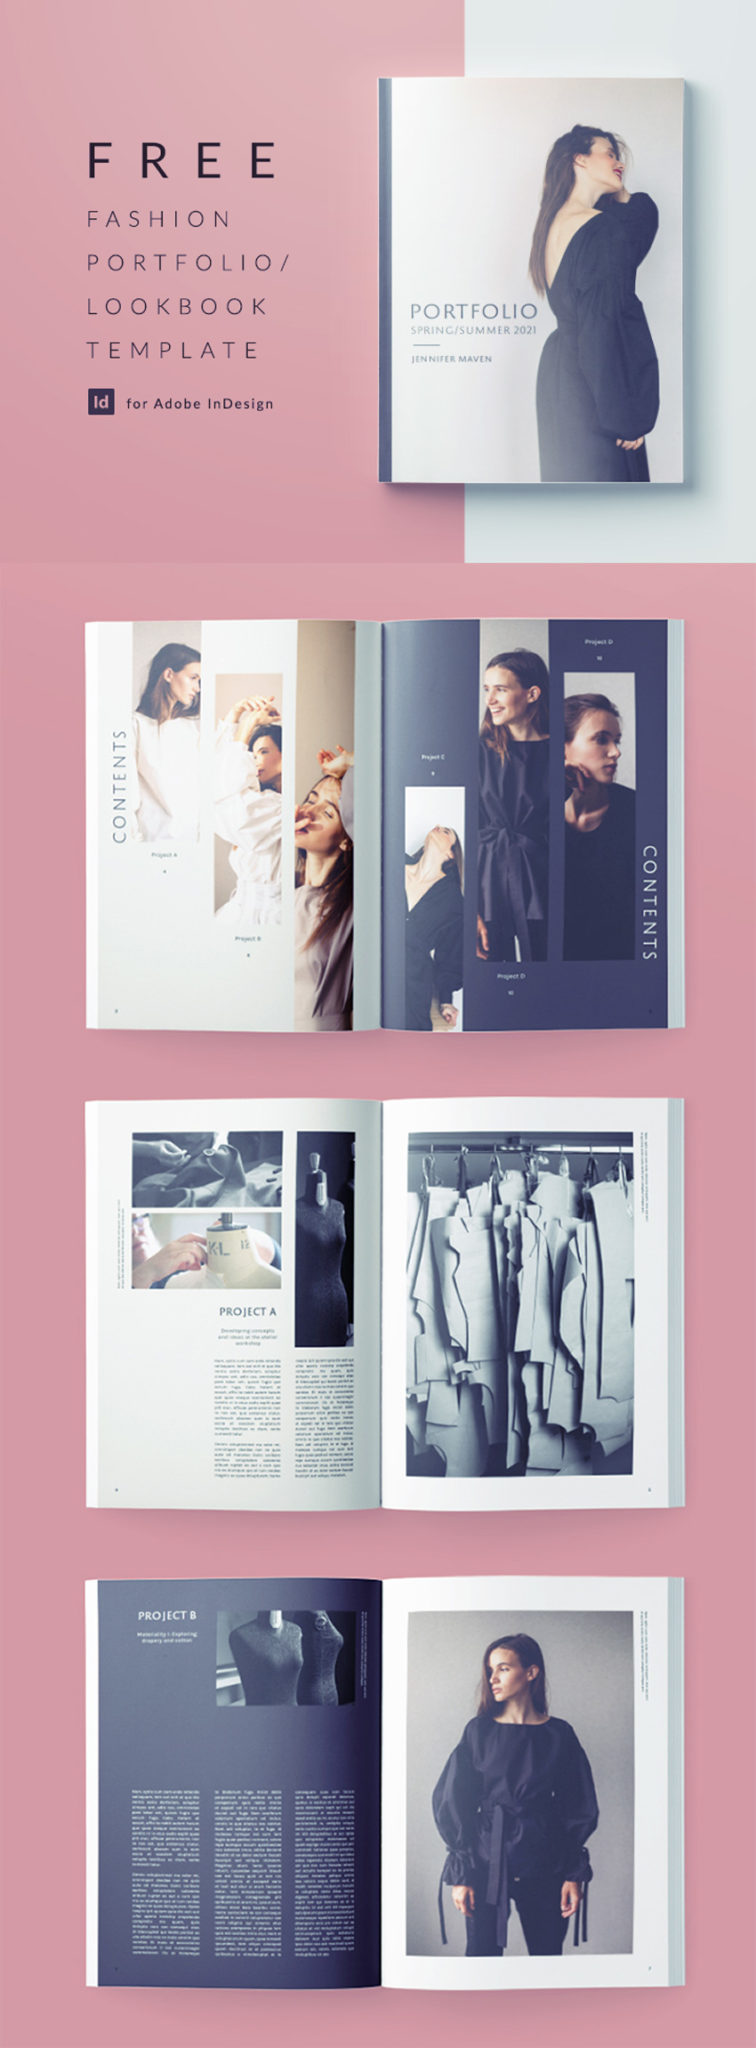 Fashion Portfolio And Lookbook Template For Indesign Free Download